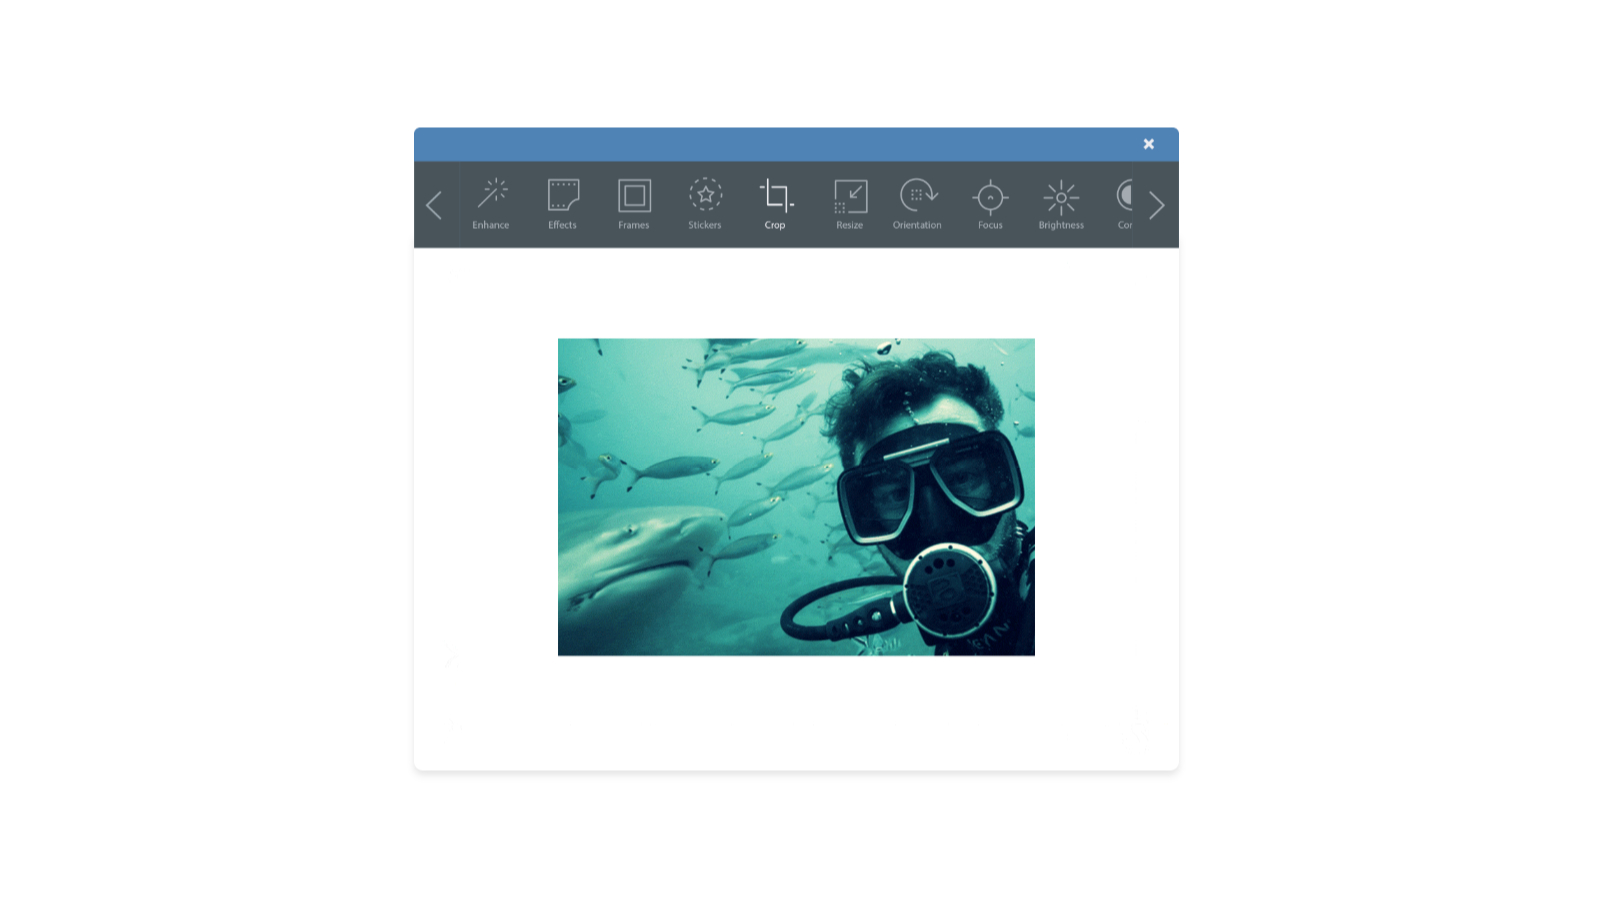 Photo Editing. Make edits directly in your email template.